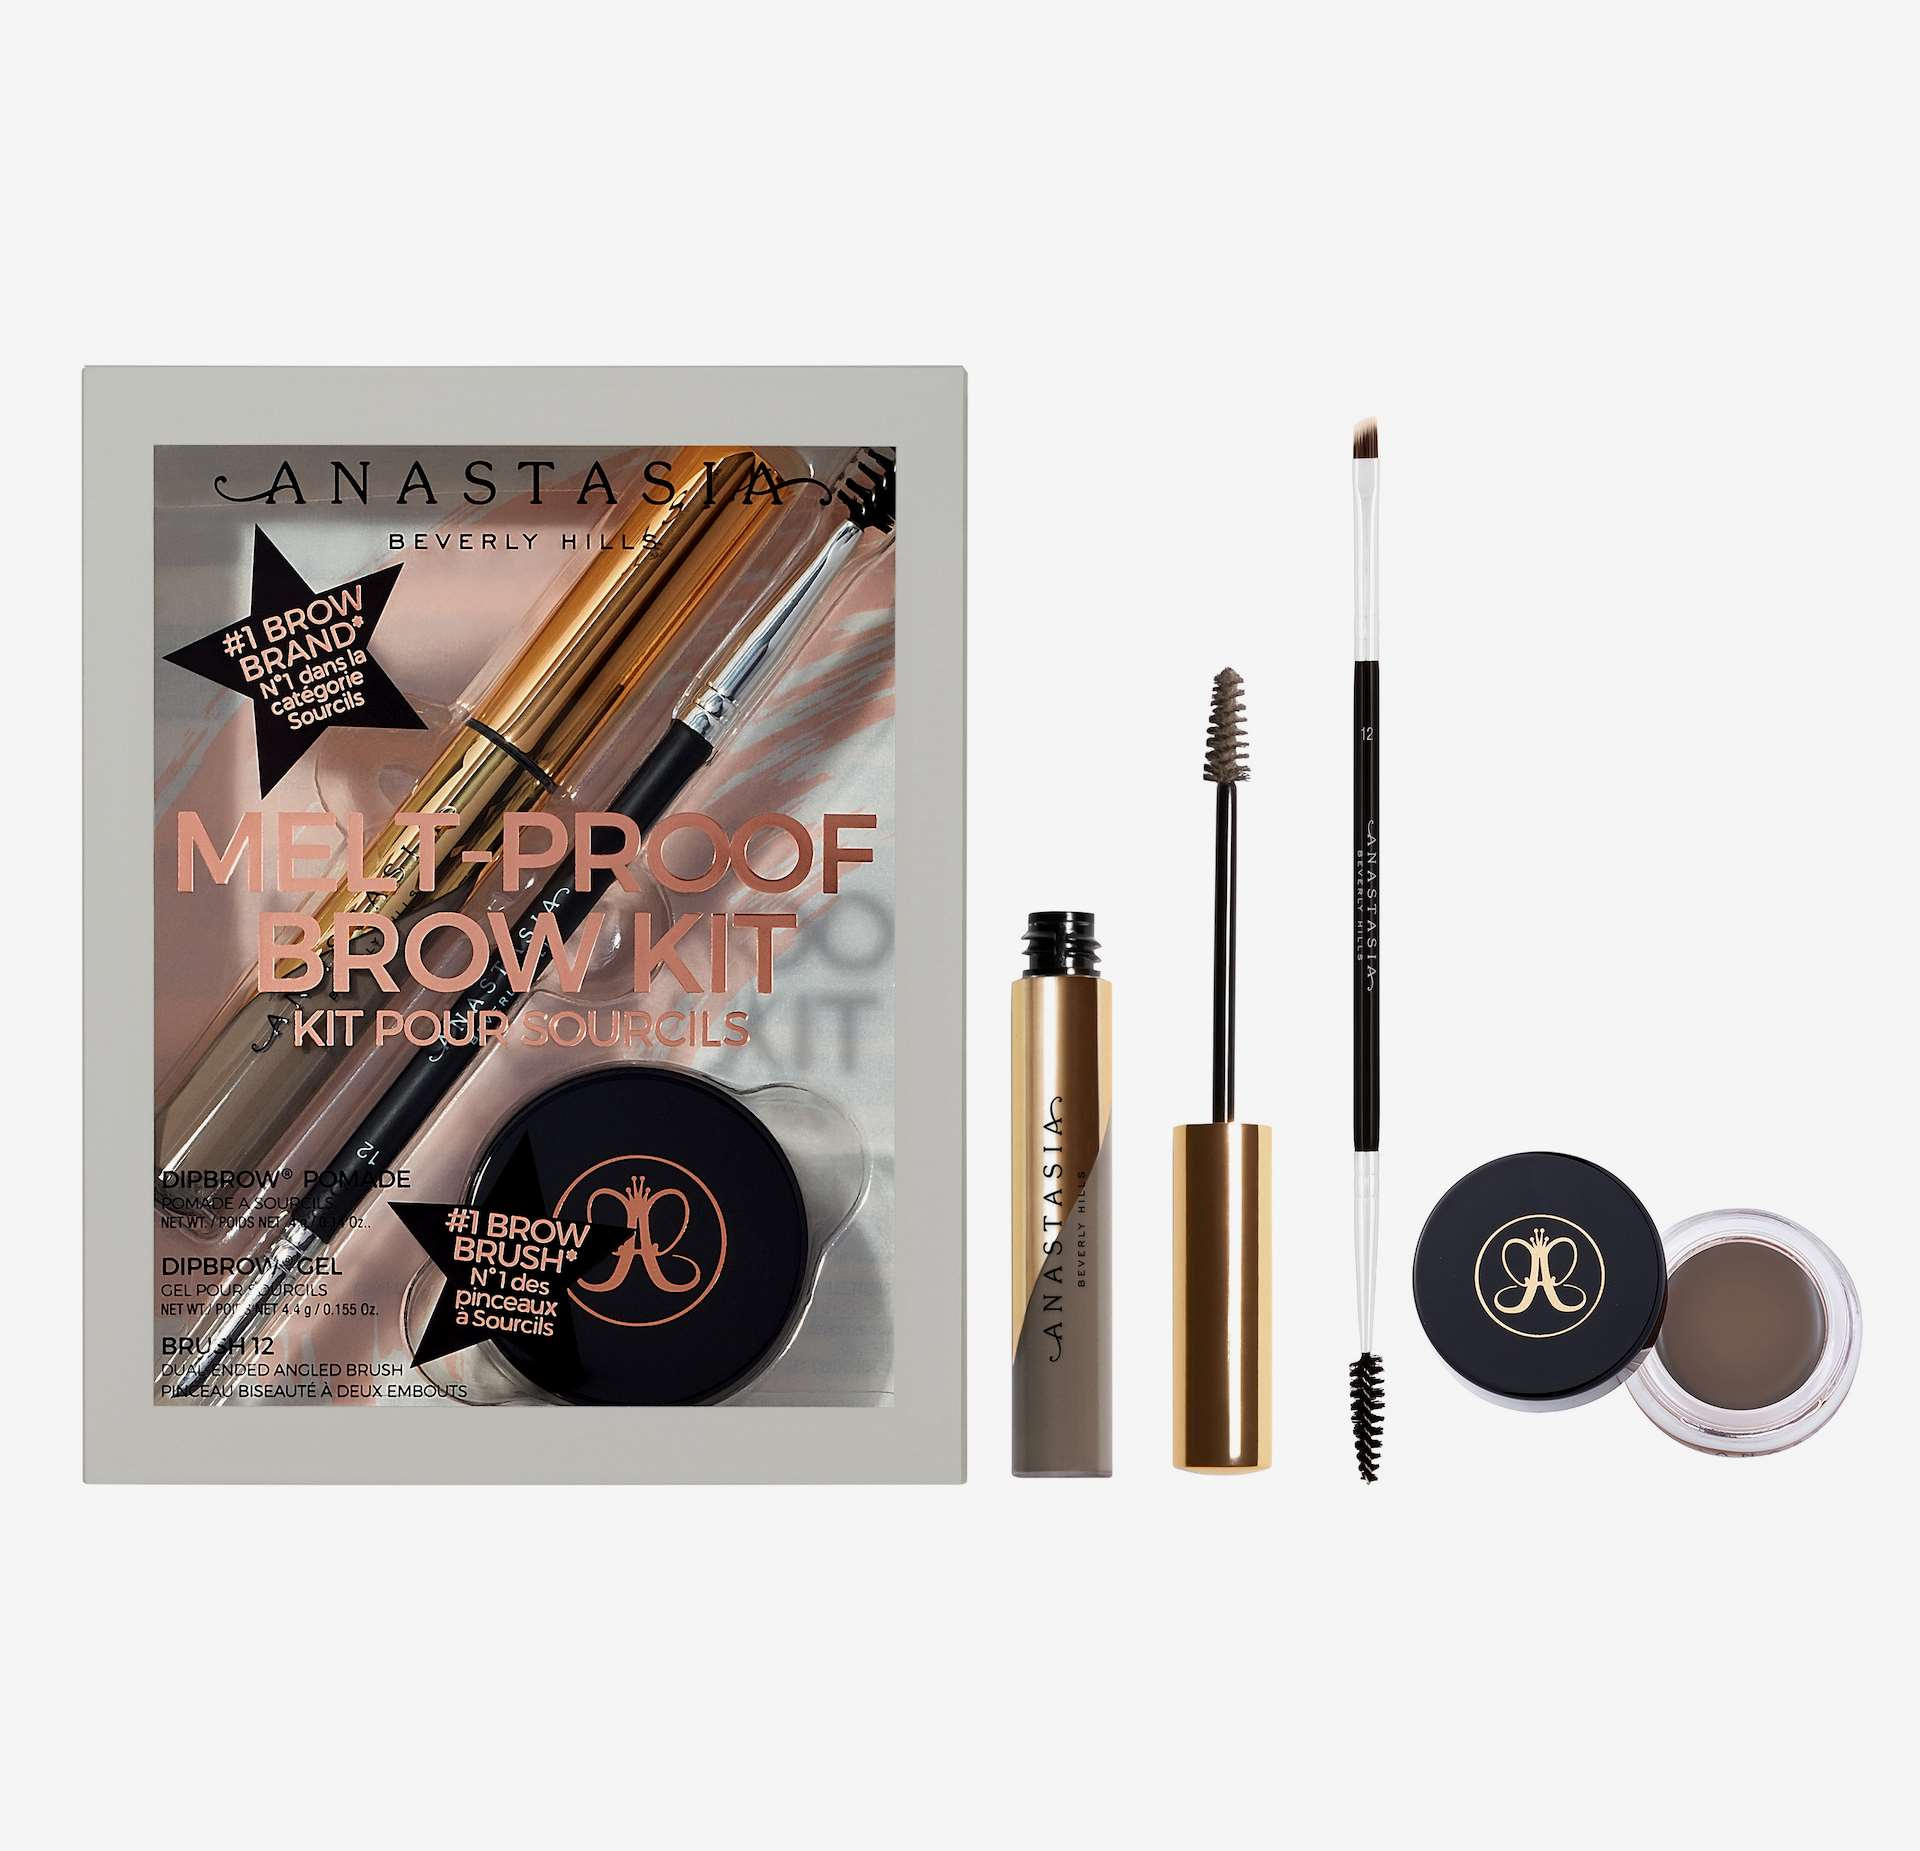 Melt-Proof Brow Kit Gift Box Taupe